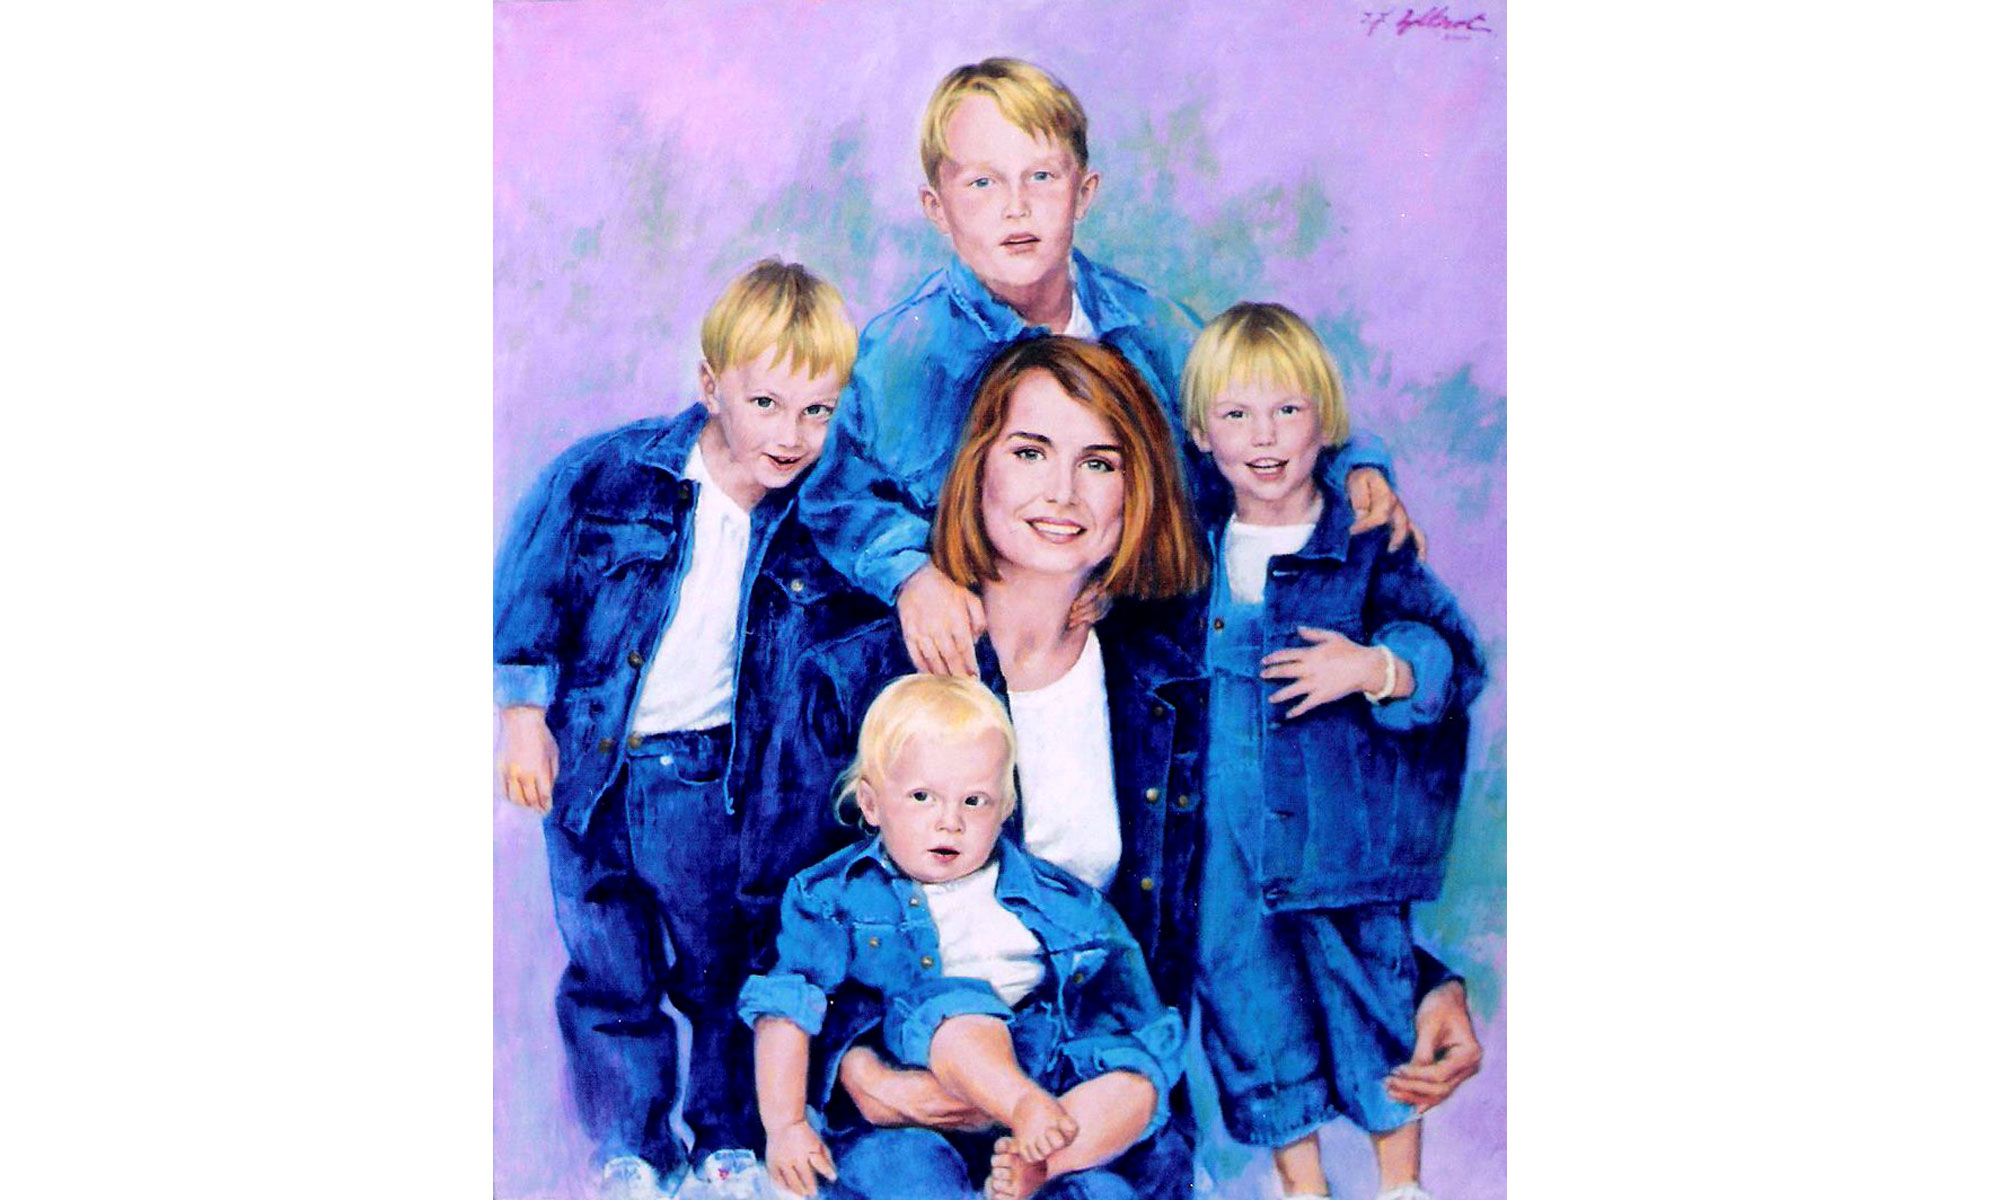 Mrs Frank Warren and Children Portrait Painting by Terence J Gilbert Oil on Canvas